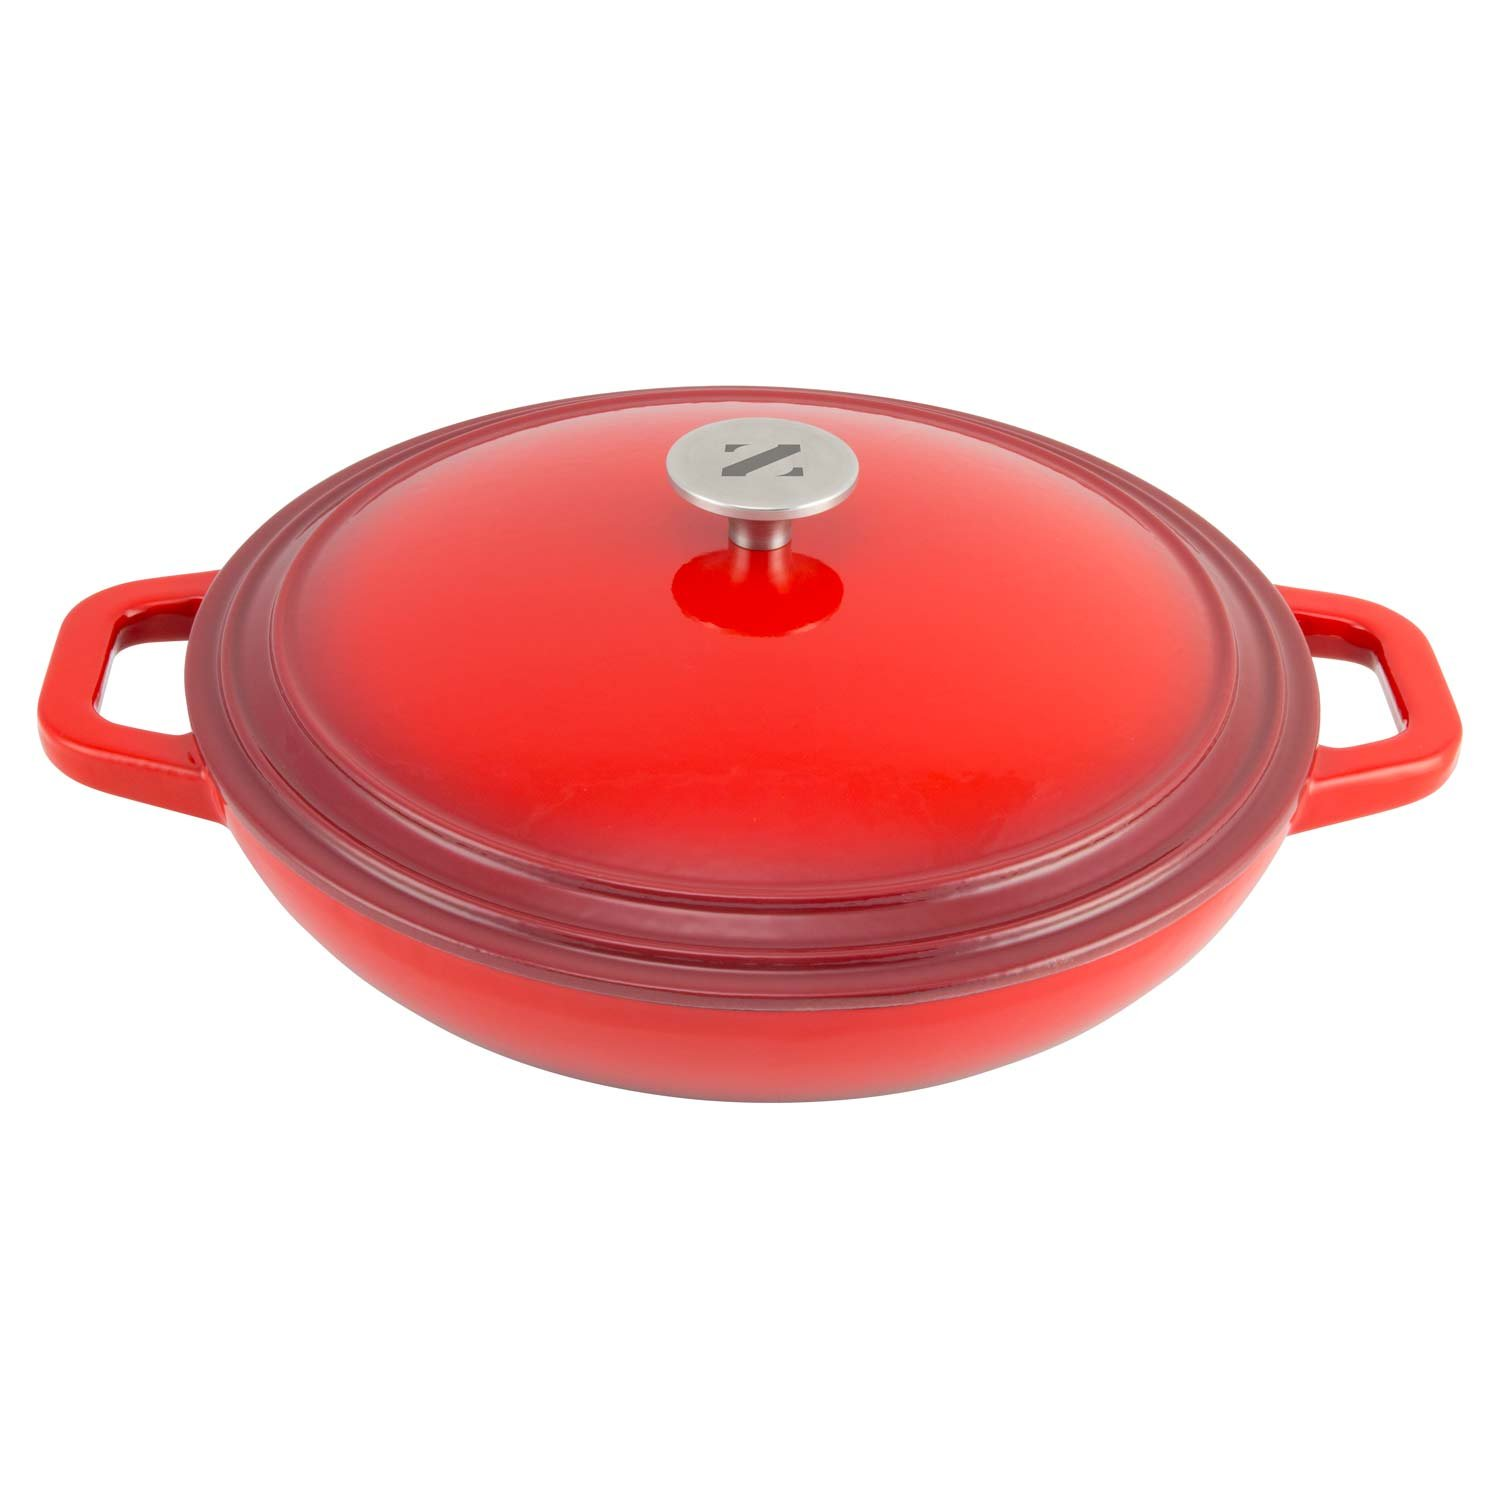 Zelancio Cookware 3-Quart Enameled Cast Iron Casserole Dish with lid, Perfect for Braising, Slow Cooking, Simmering and Baking, Cayenne Red